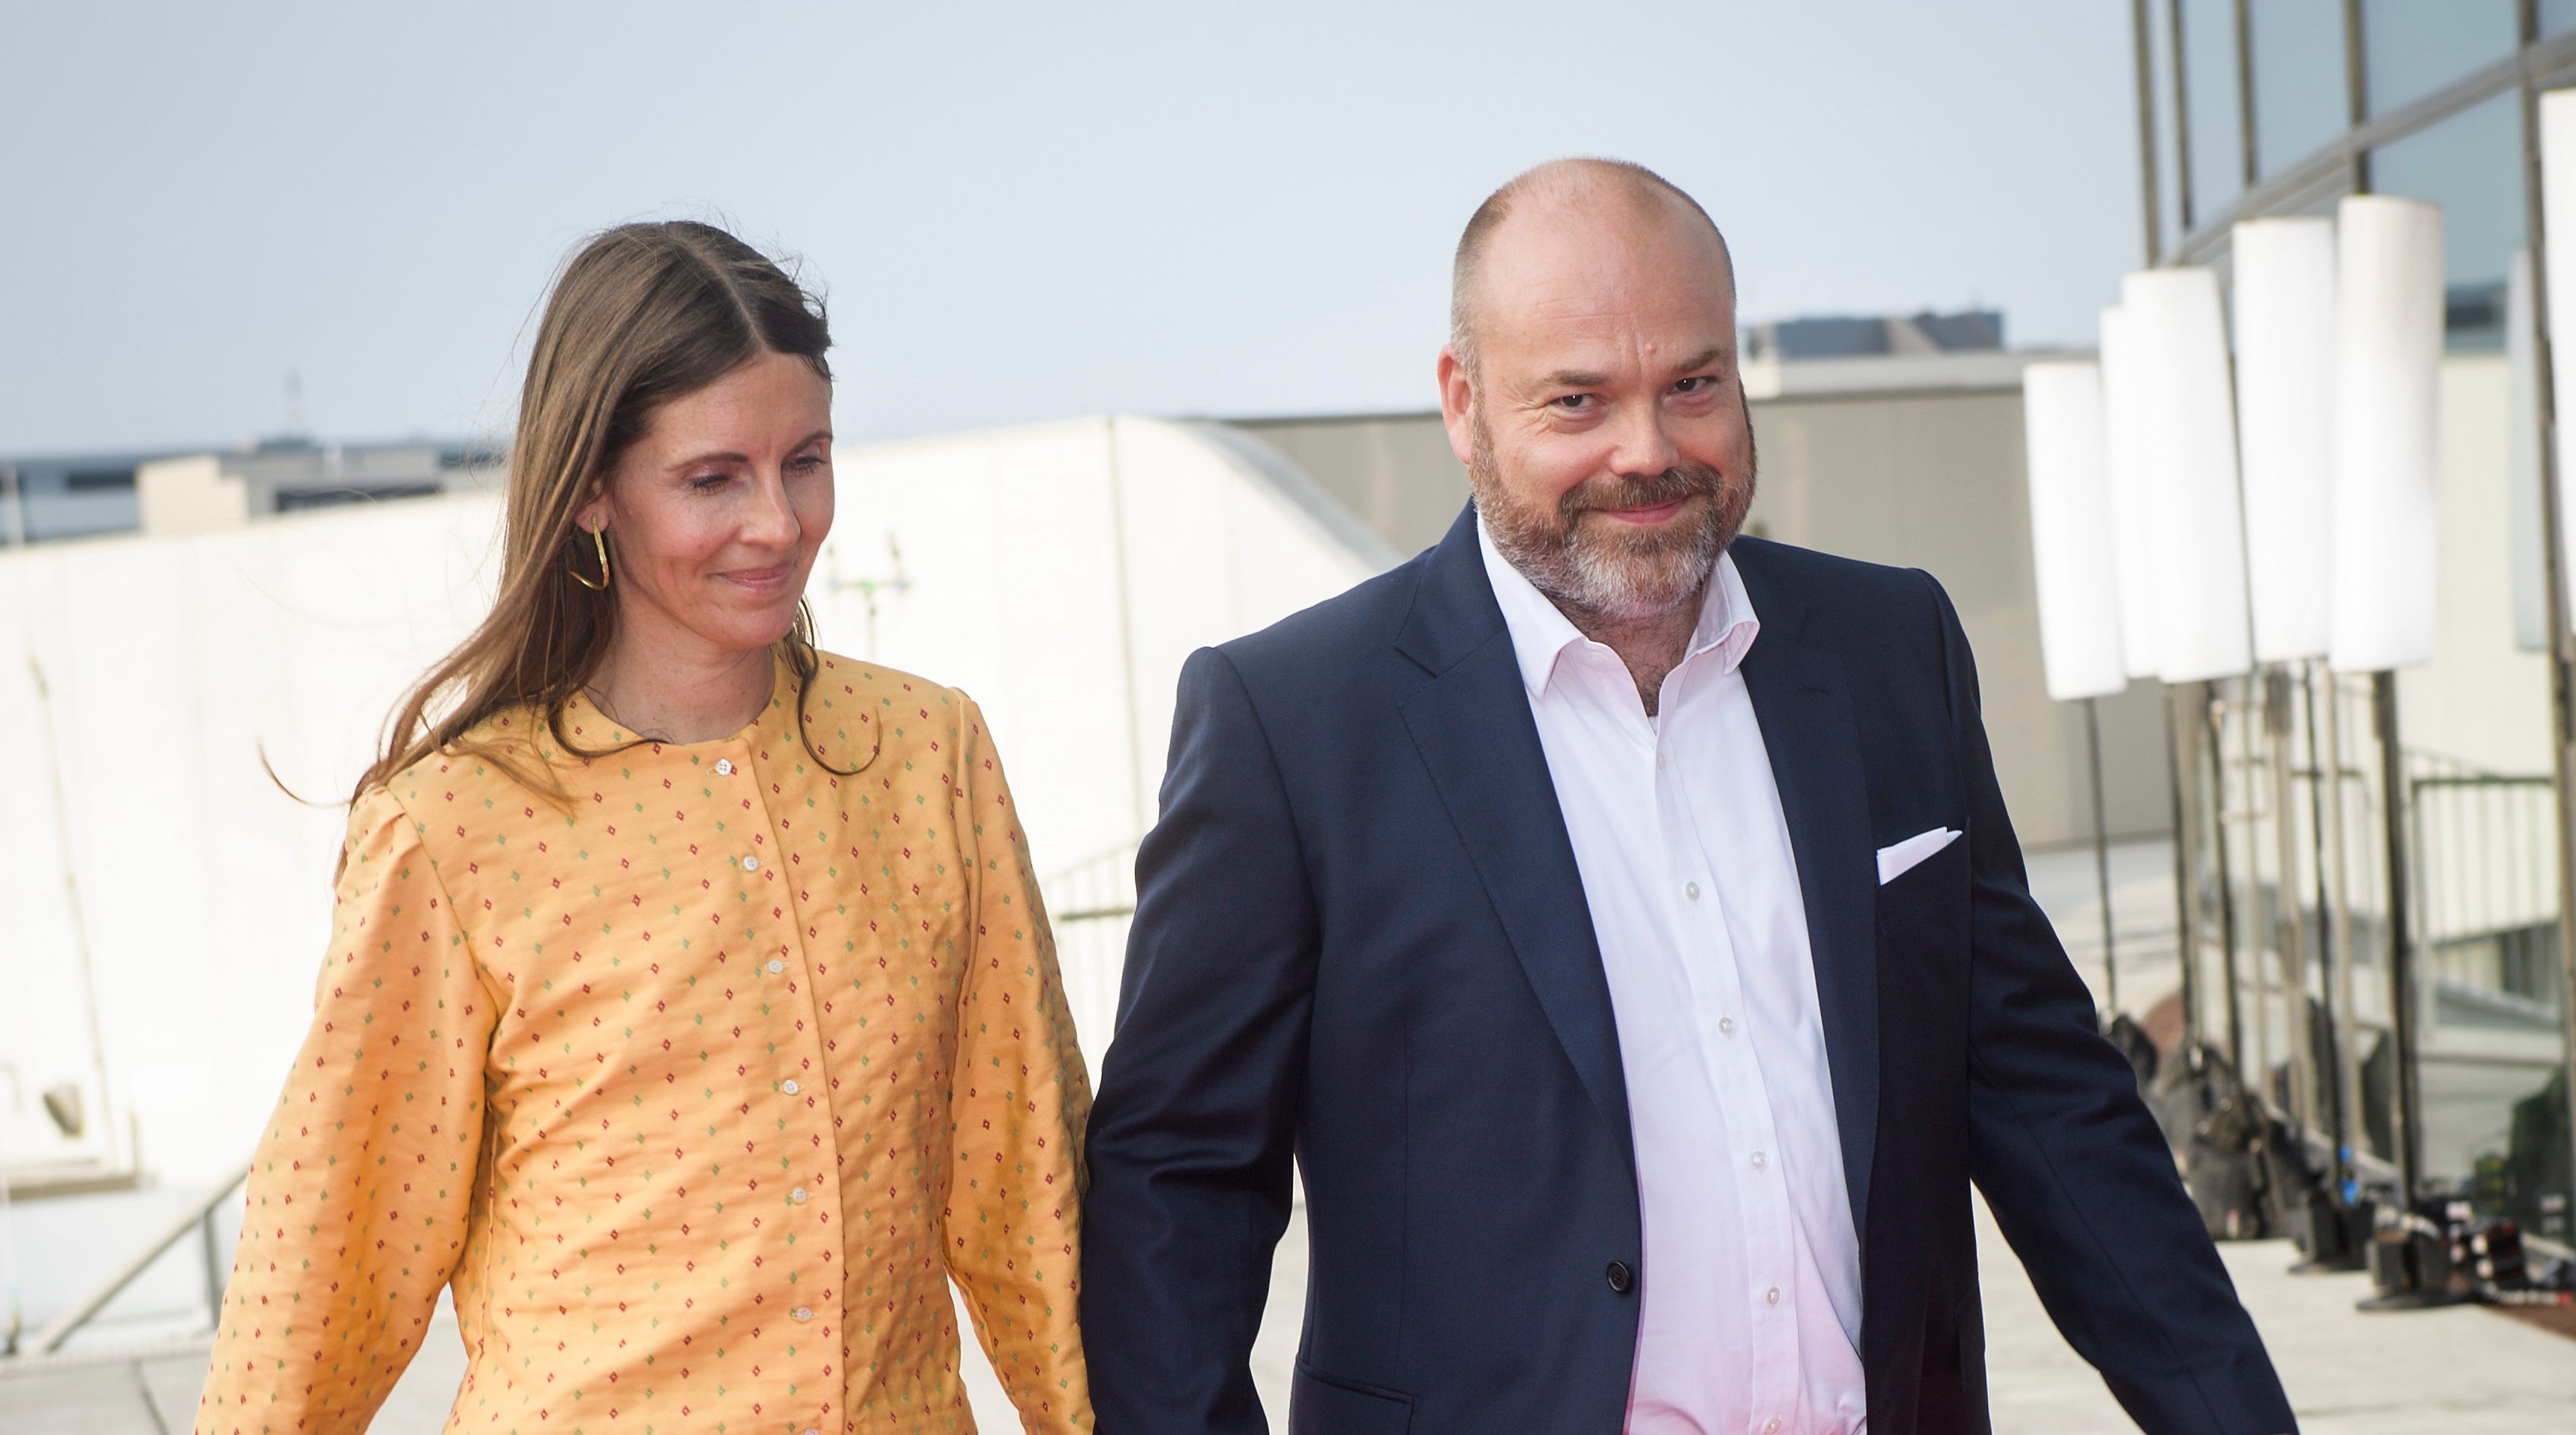 ASOS billionaire Anders Holch Povlsen (R) and his wife Anne Holch Povlsen (L) arrive at the celebration of the 50th birthday of Crown Prince Frederik of Denmark in Royal Arena in Copenhagen, Denmark, 27 May 2018 .